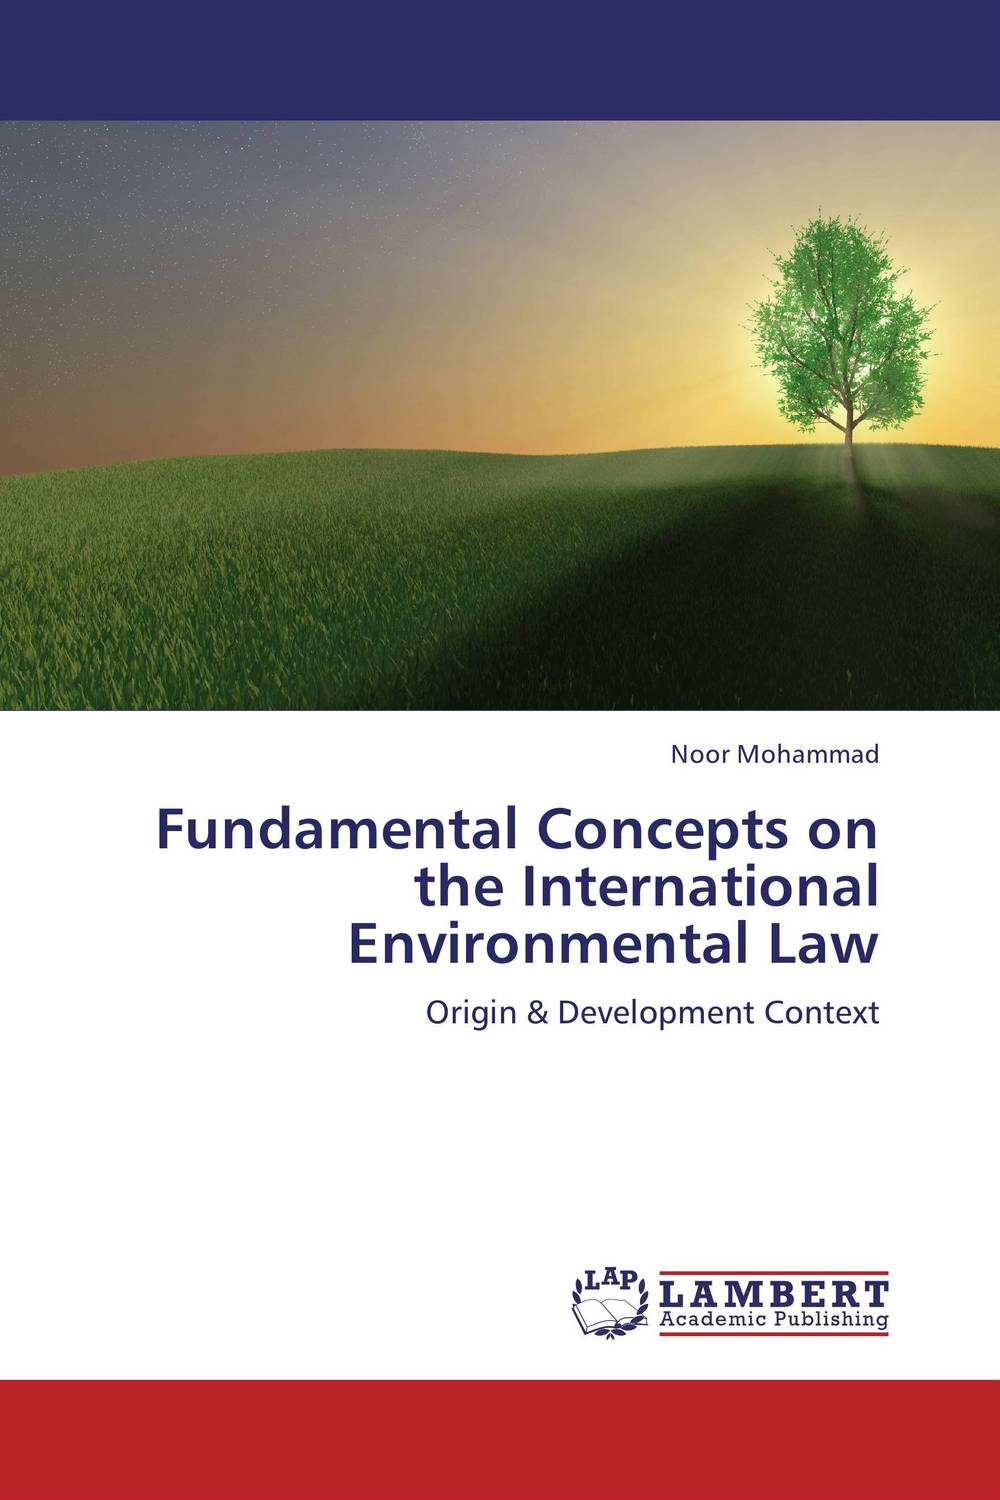 Fundamental Concepts on the International Environmental Law foreign policy as a means for advancing human rights